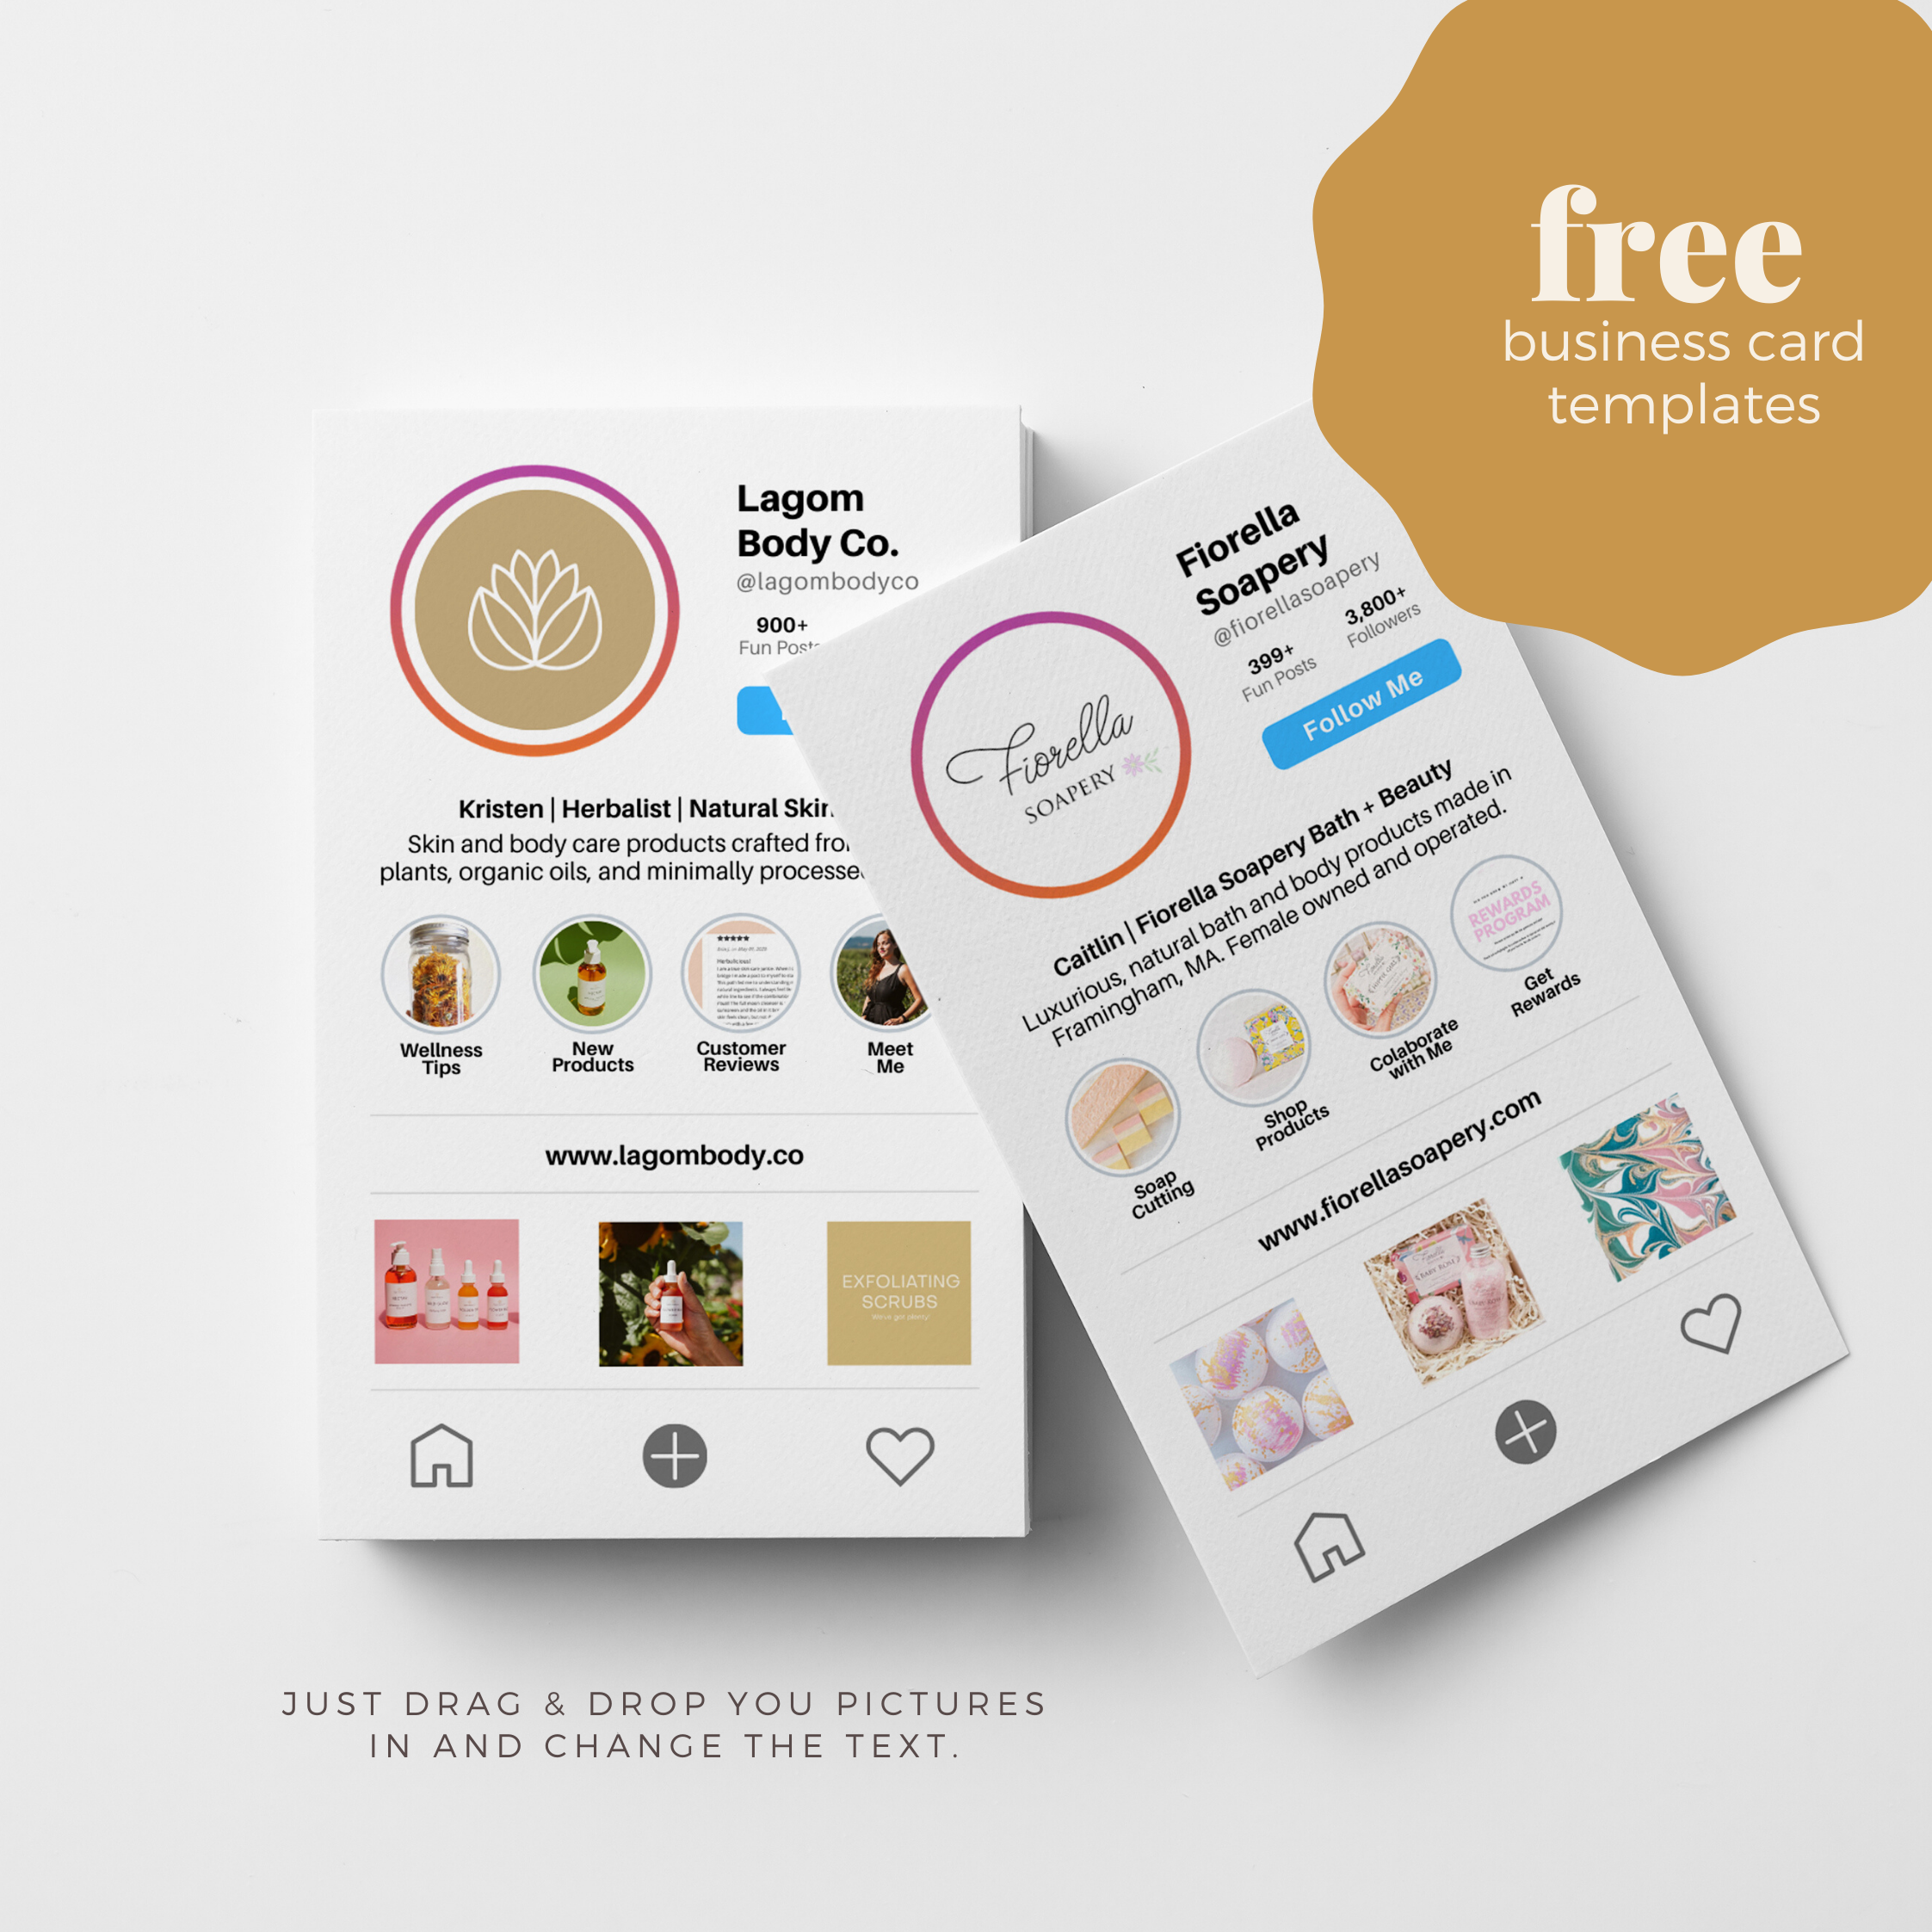 Free Instagram Business Card Templates For Etsy Sellers Fashion Business Cards Free Business Card Templates Unique Business Cards Design